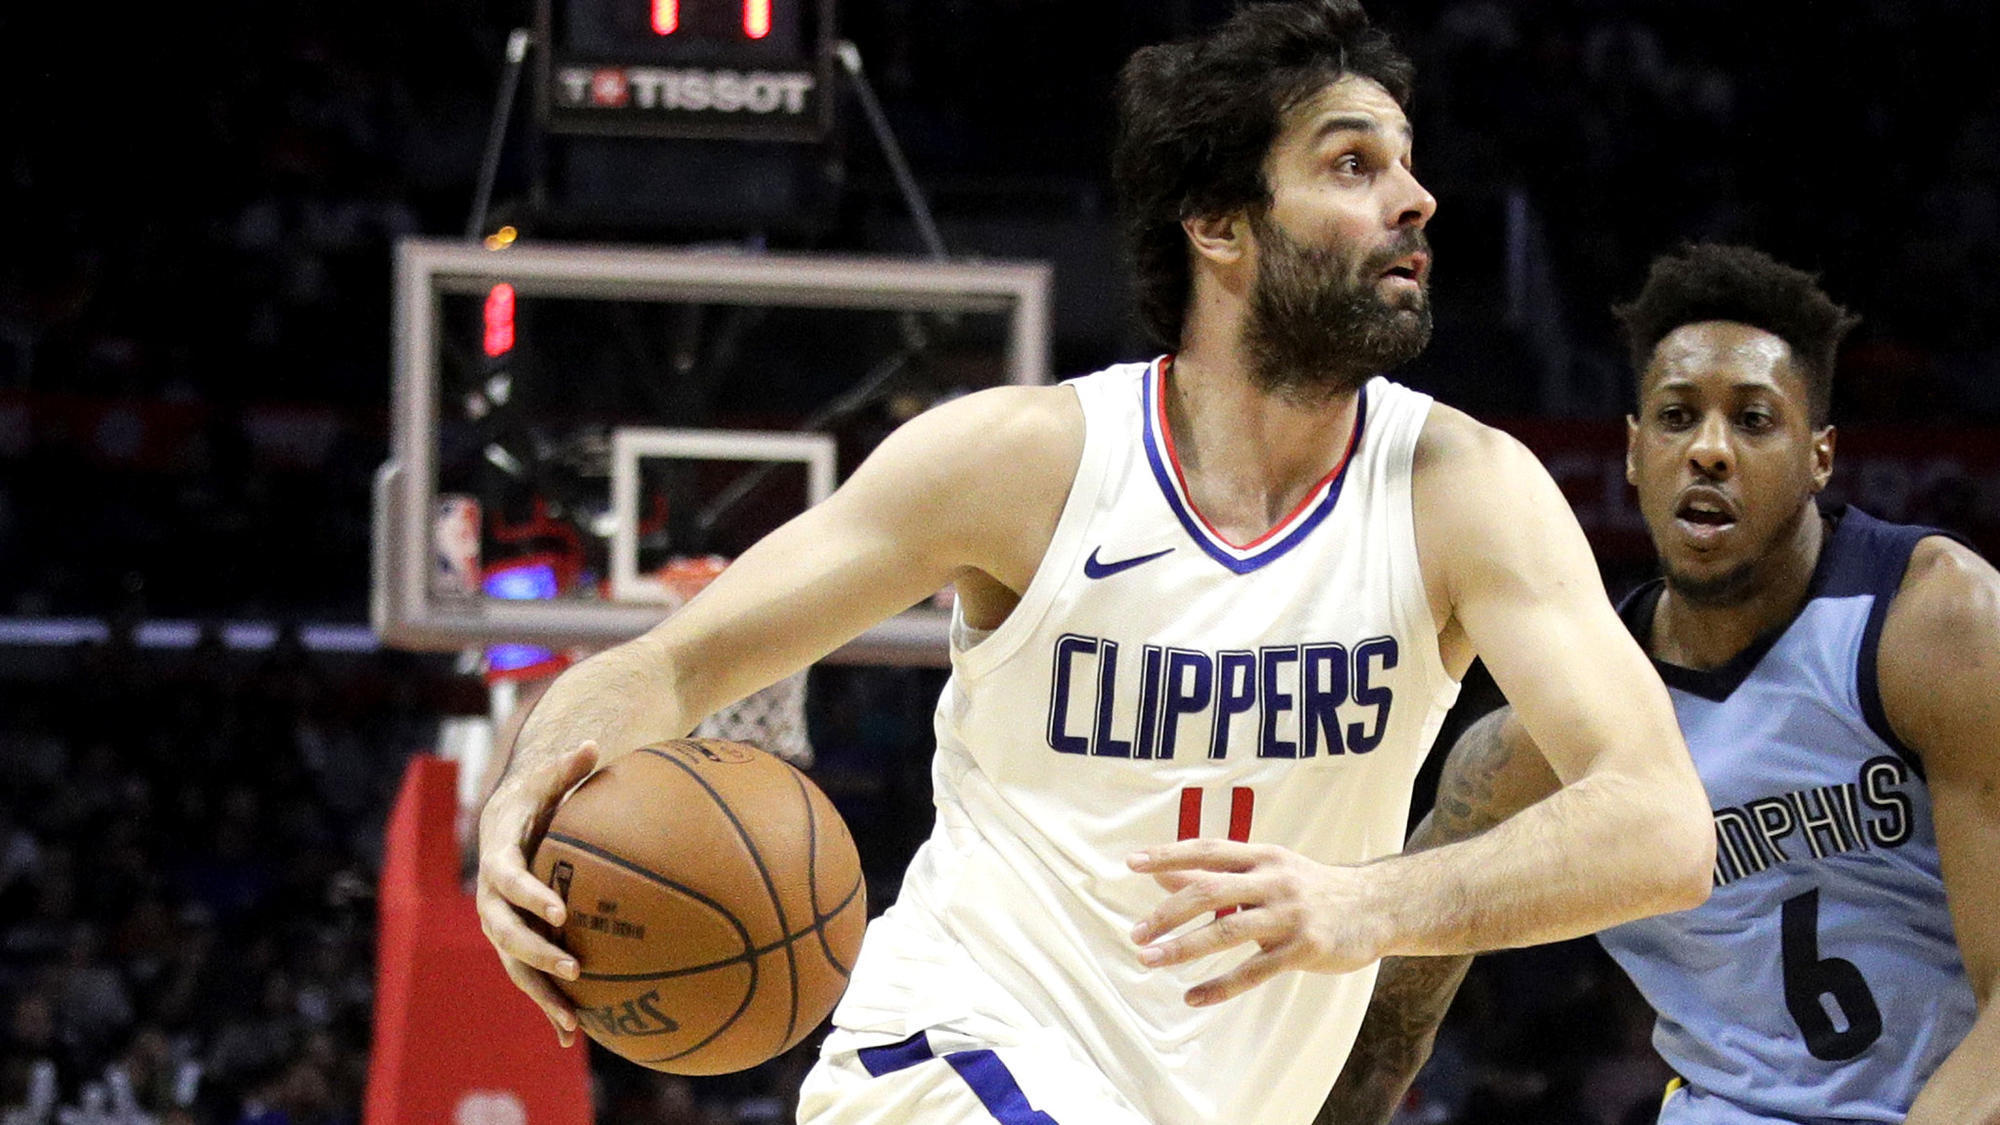 Clippers will keep Milos Teodosic despite crowded backcourt